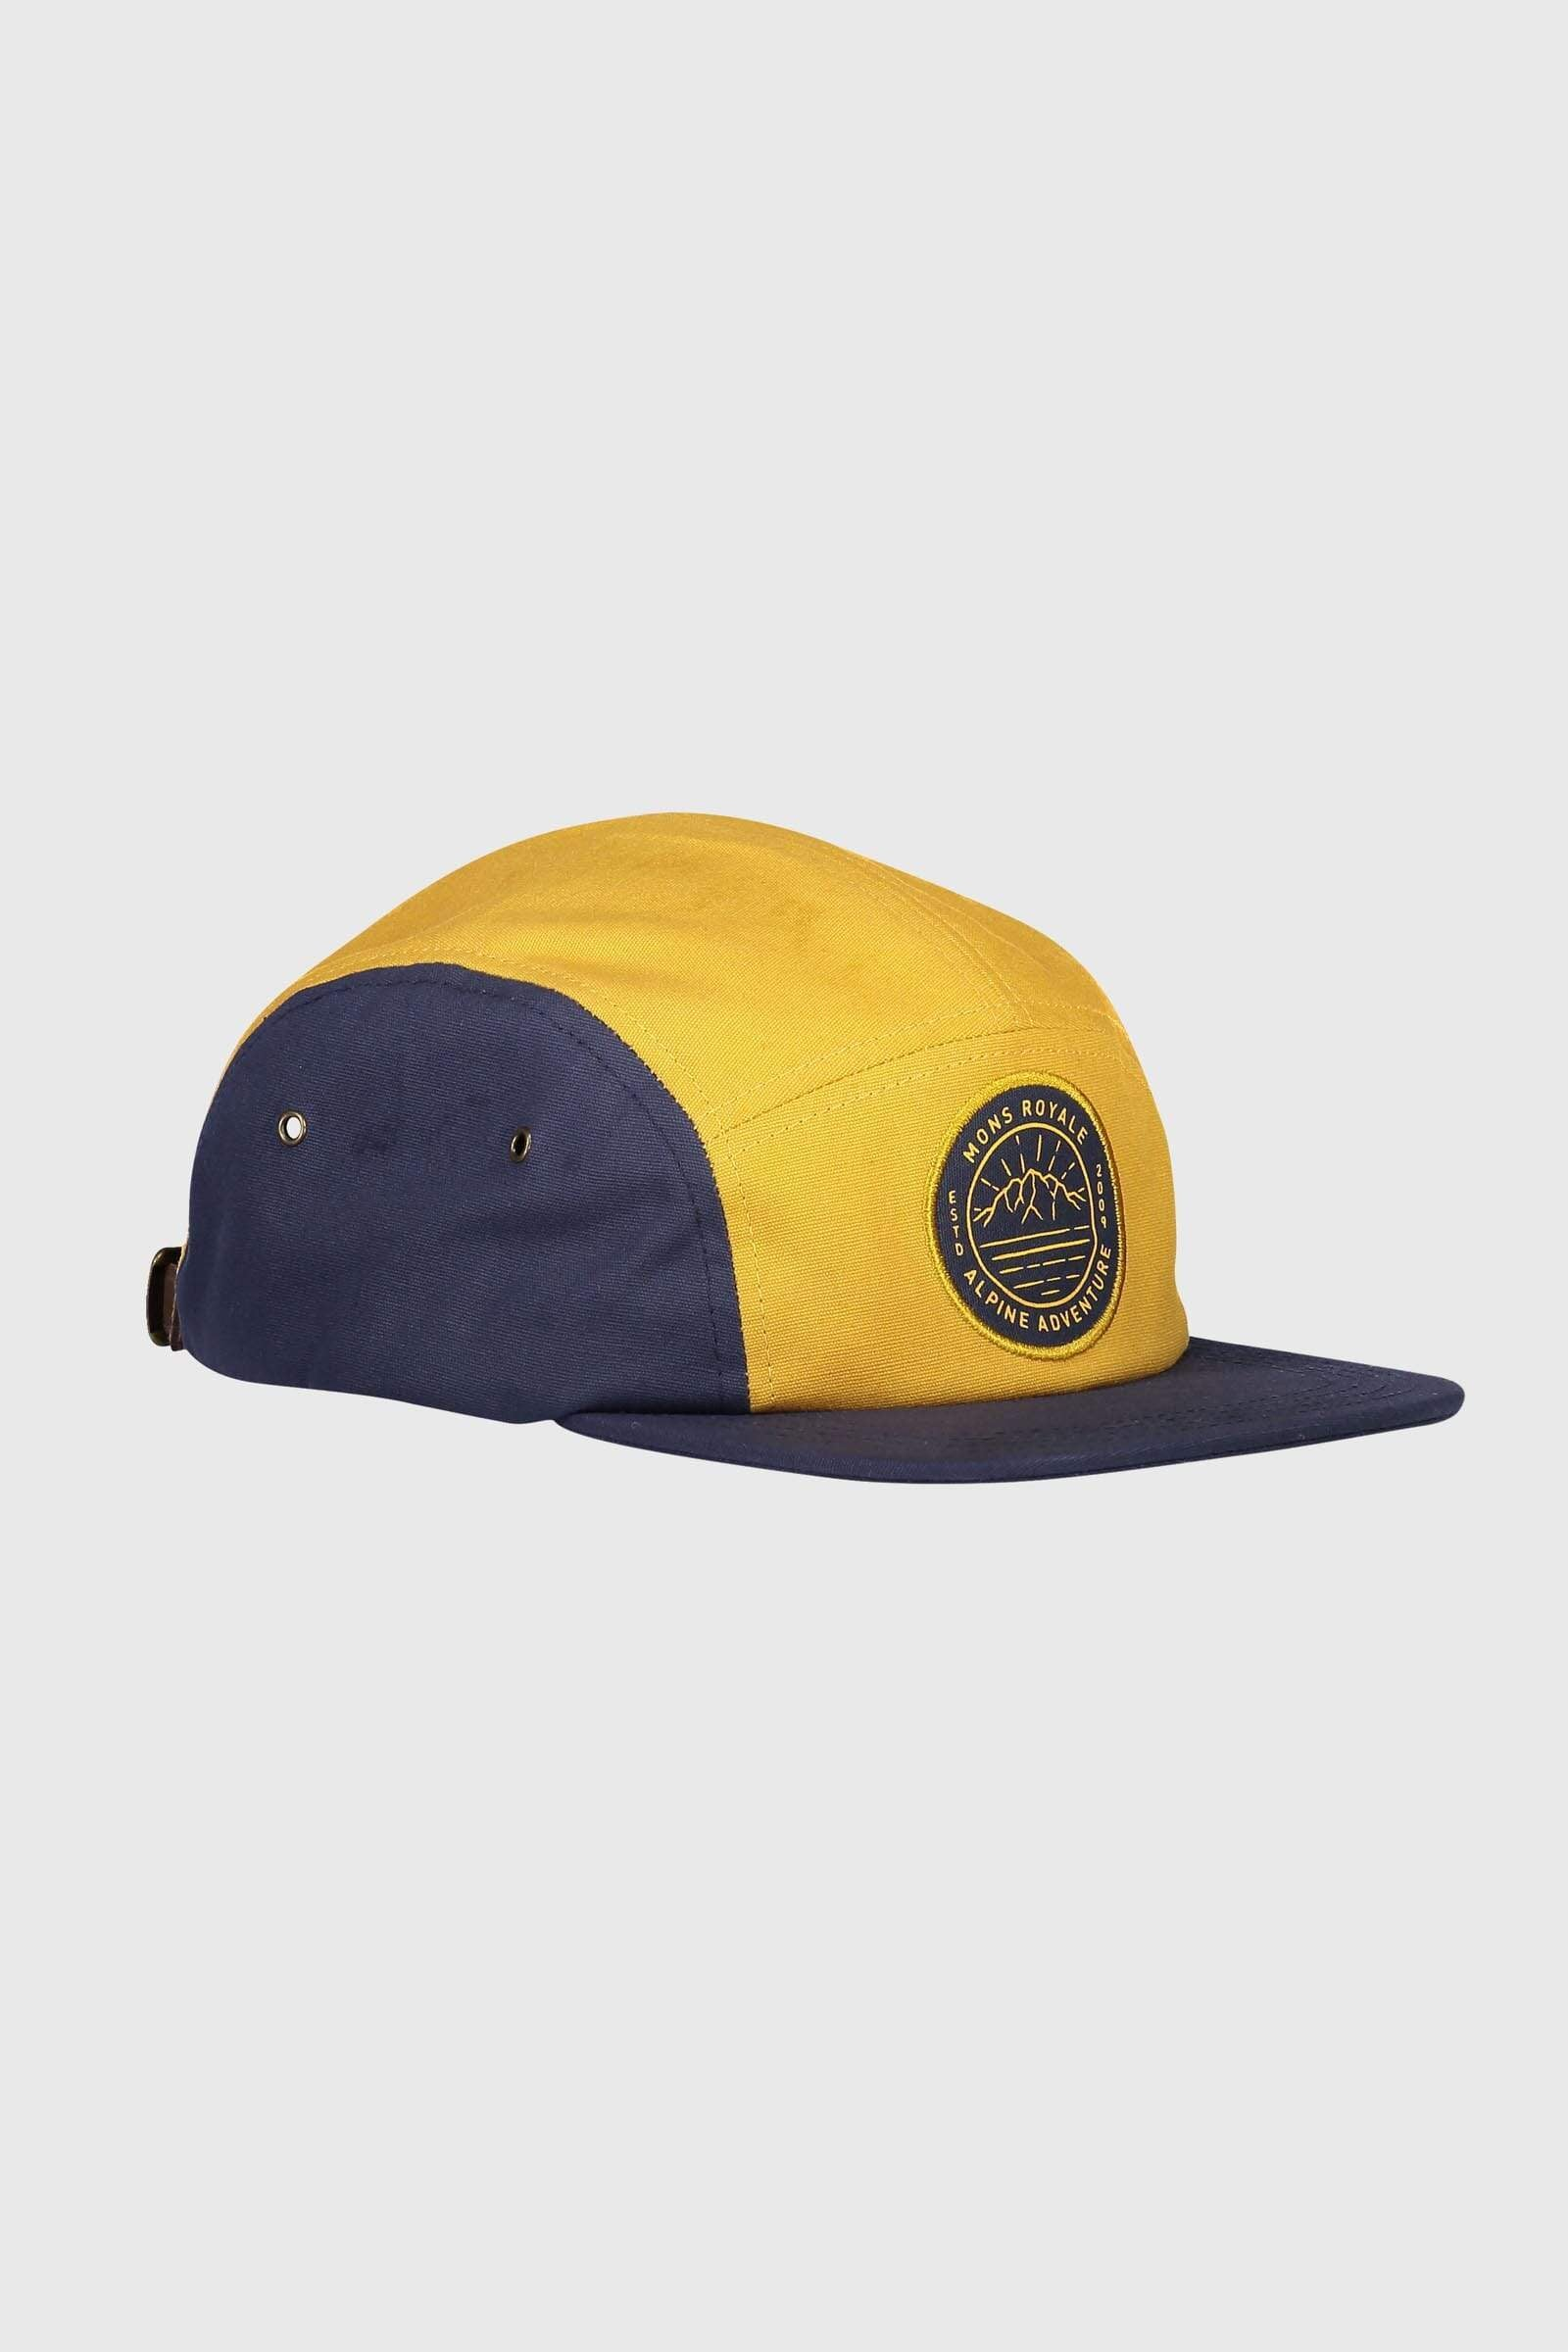 Beattie 5 Panel Cap - 9 Iron / Gold